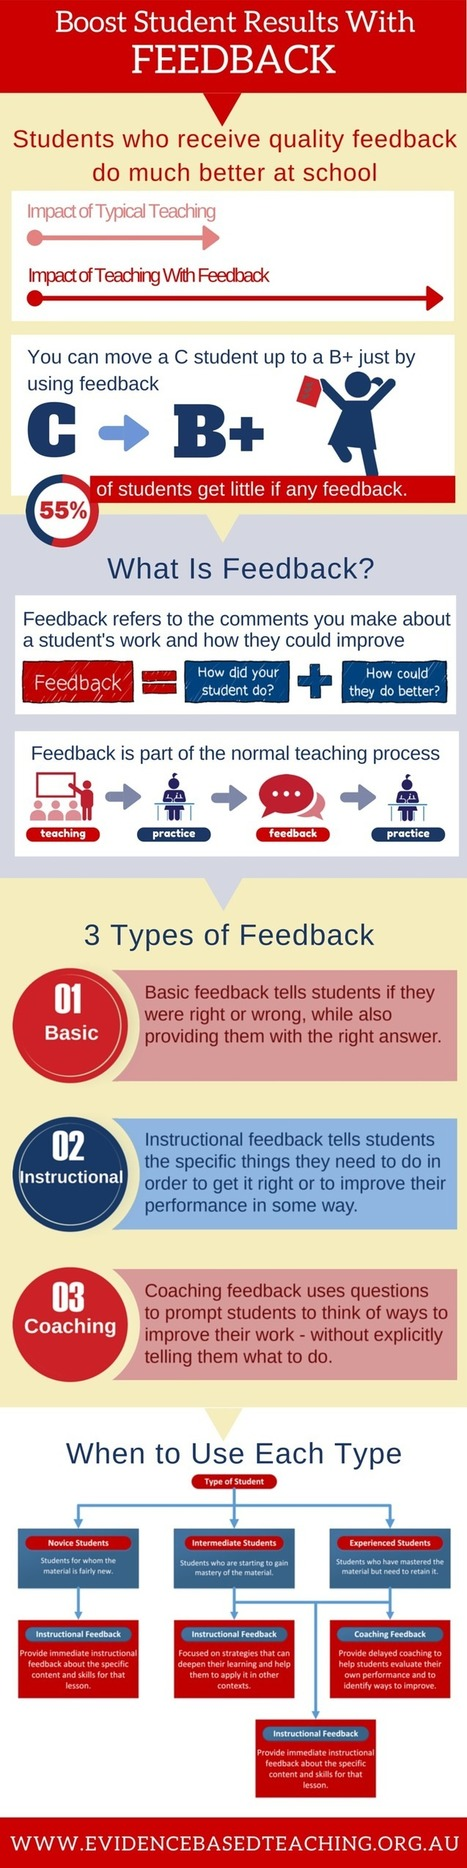 The Value of Feedback Infographic | Ensinar e Aprender no séc. 21 (Teaching and Learning in the 21st century) | Scoop.it